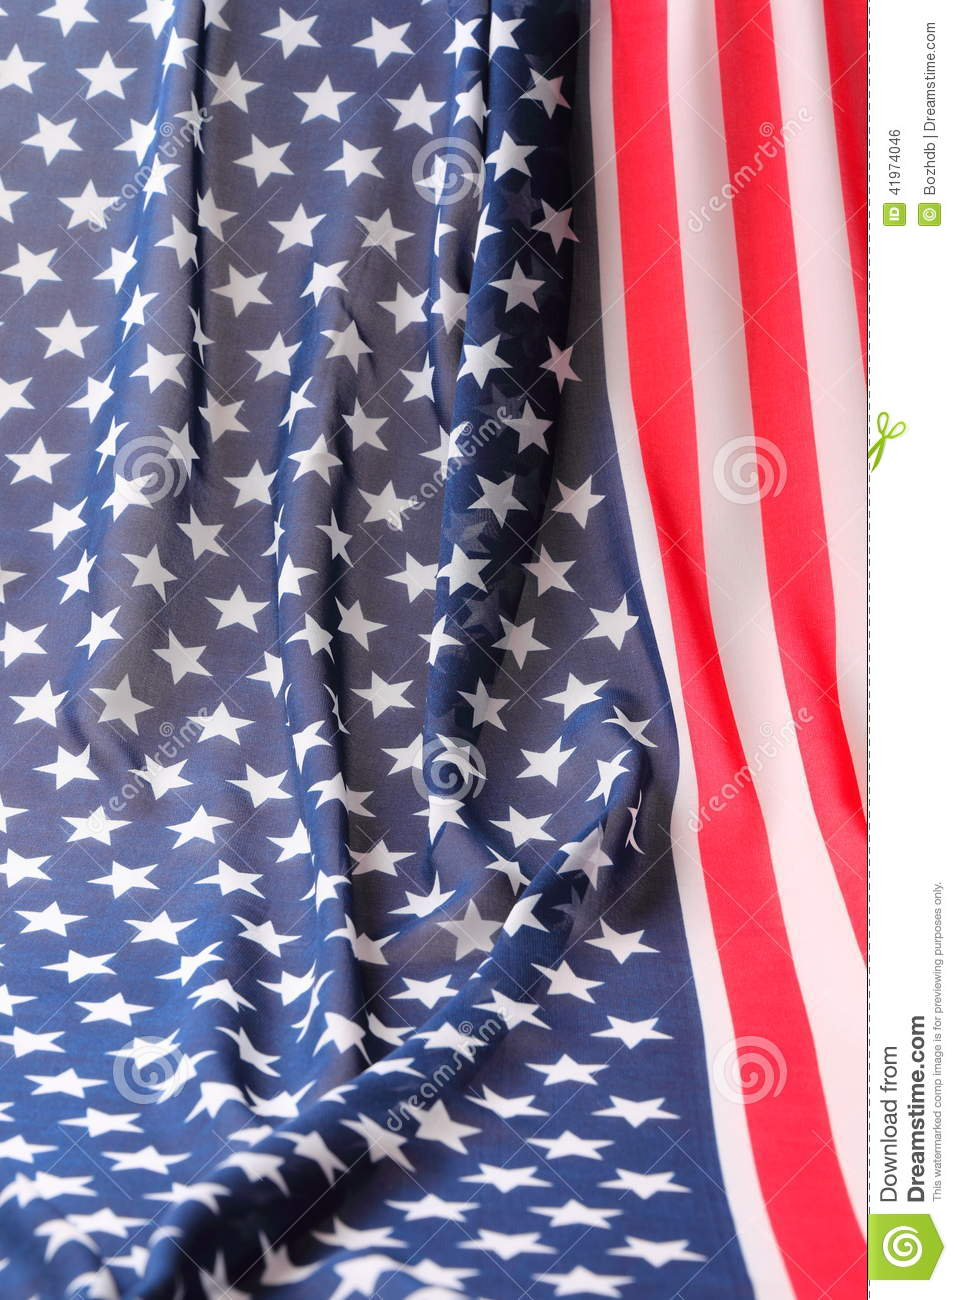 Decoration in american flag style stock photo image for American flag decoration